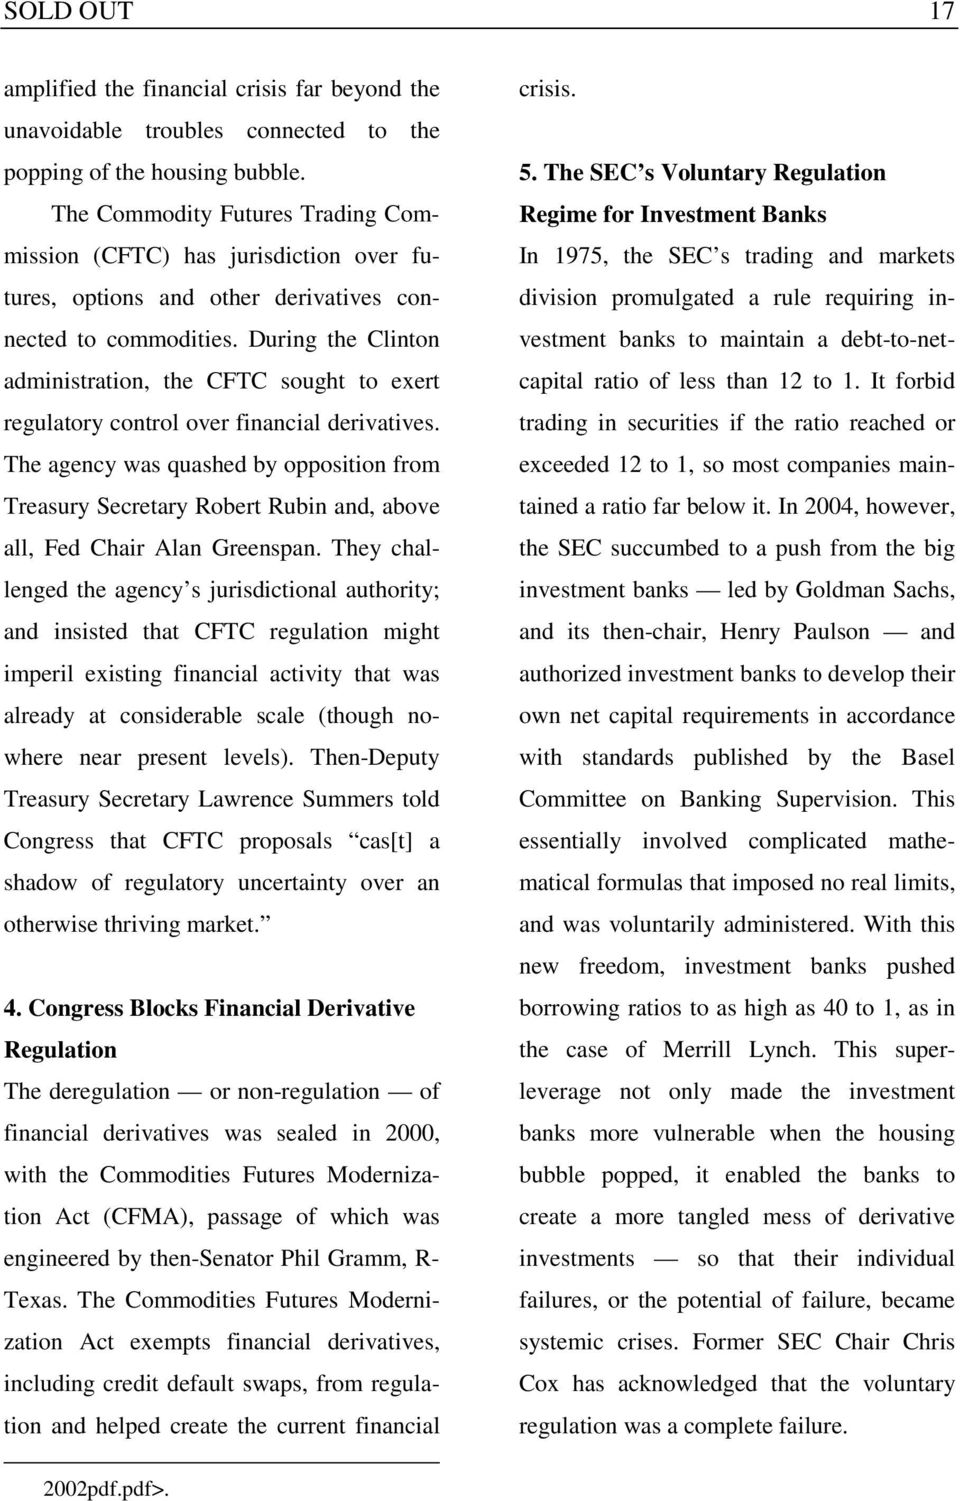 During the Clinton administration, the CFTC sought to exert regulatory control over financial derivatives.